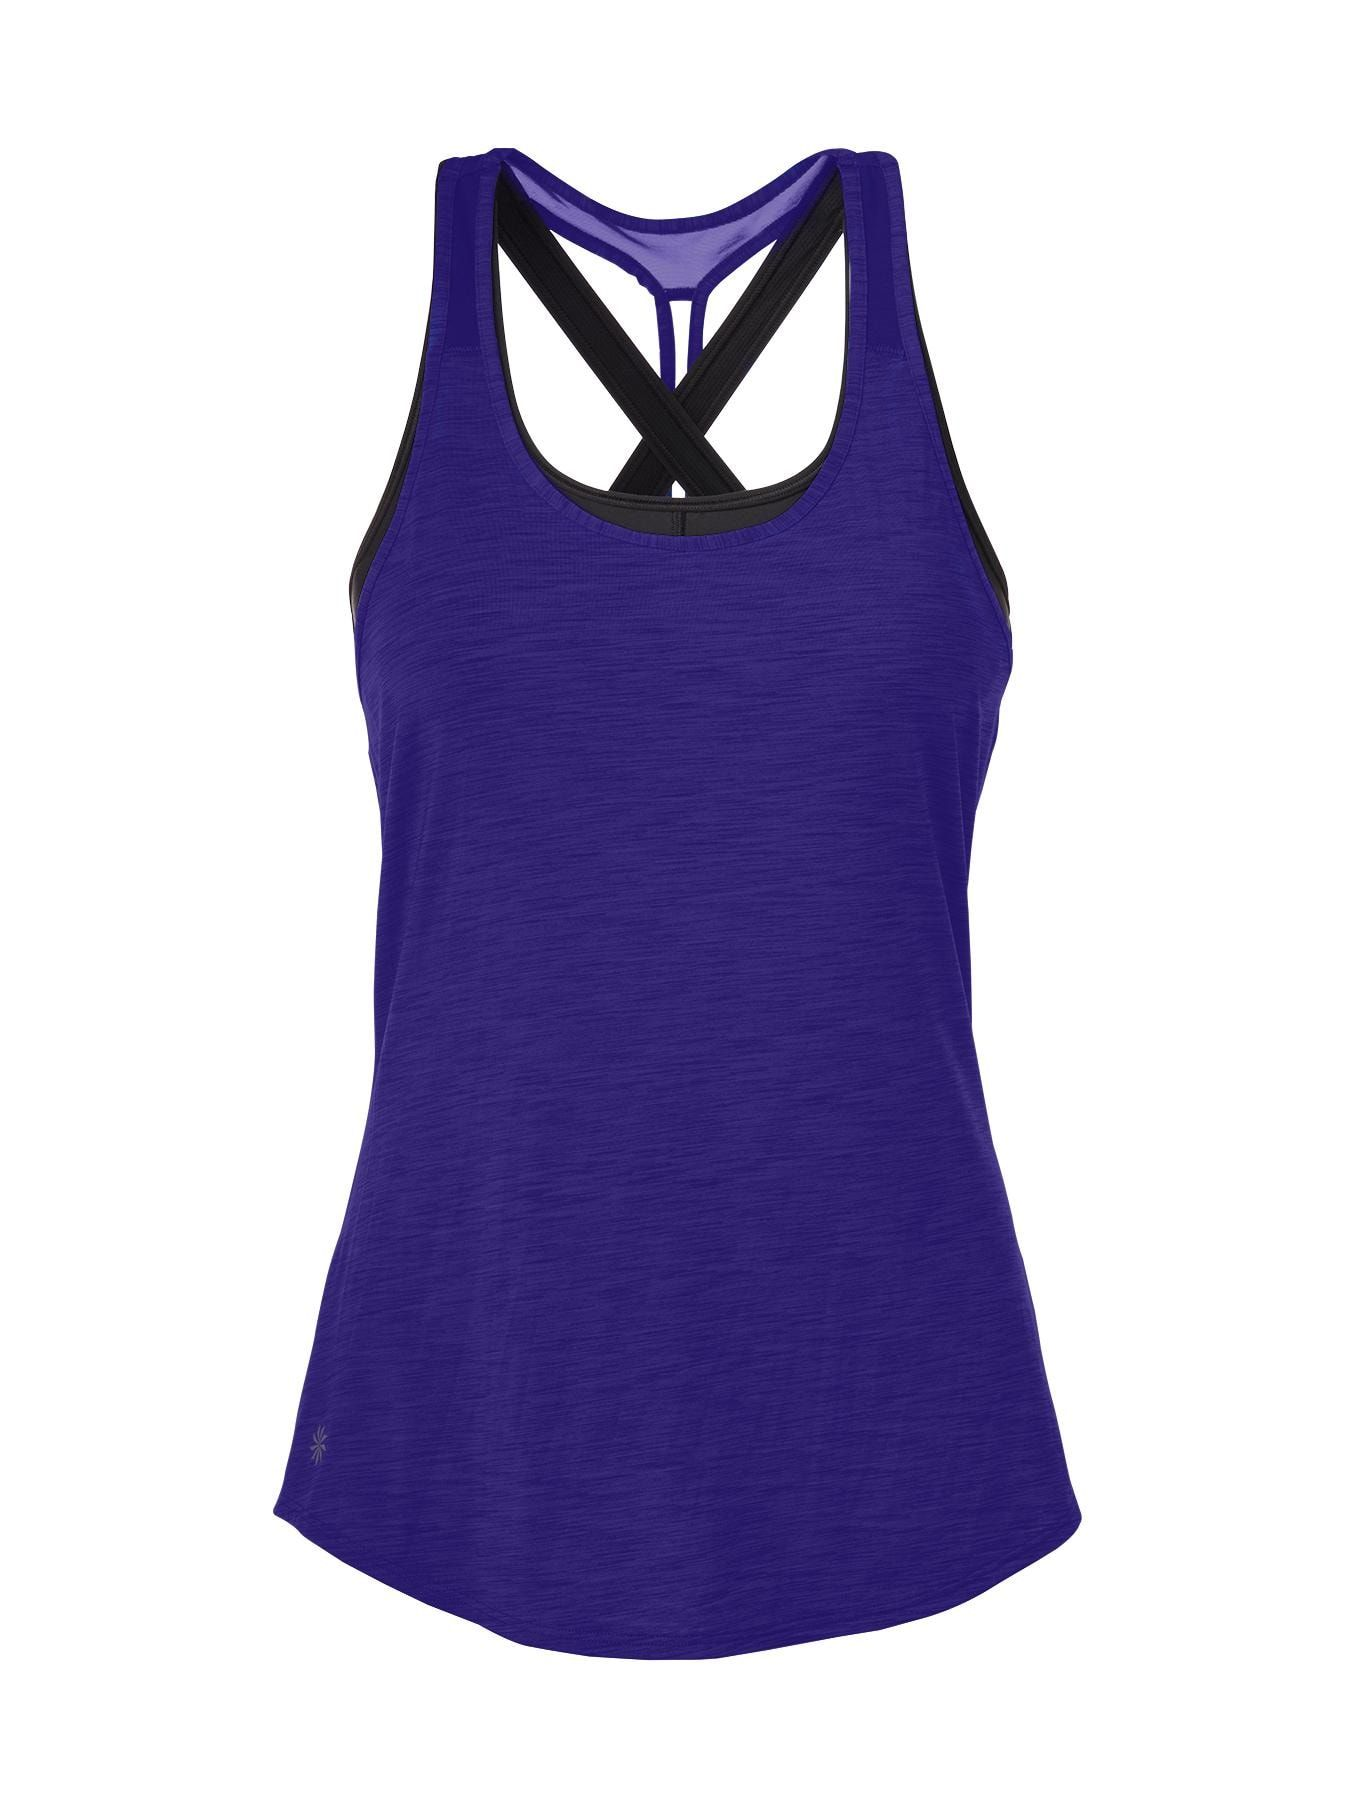 product photo Athletic tank tops, Tops, Fashion